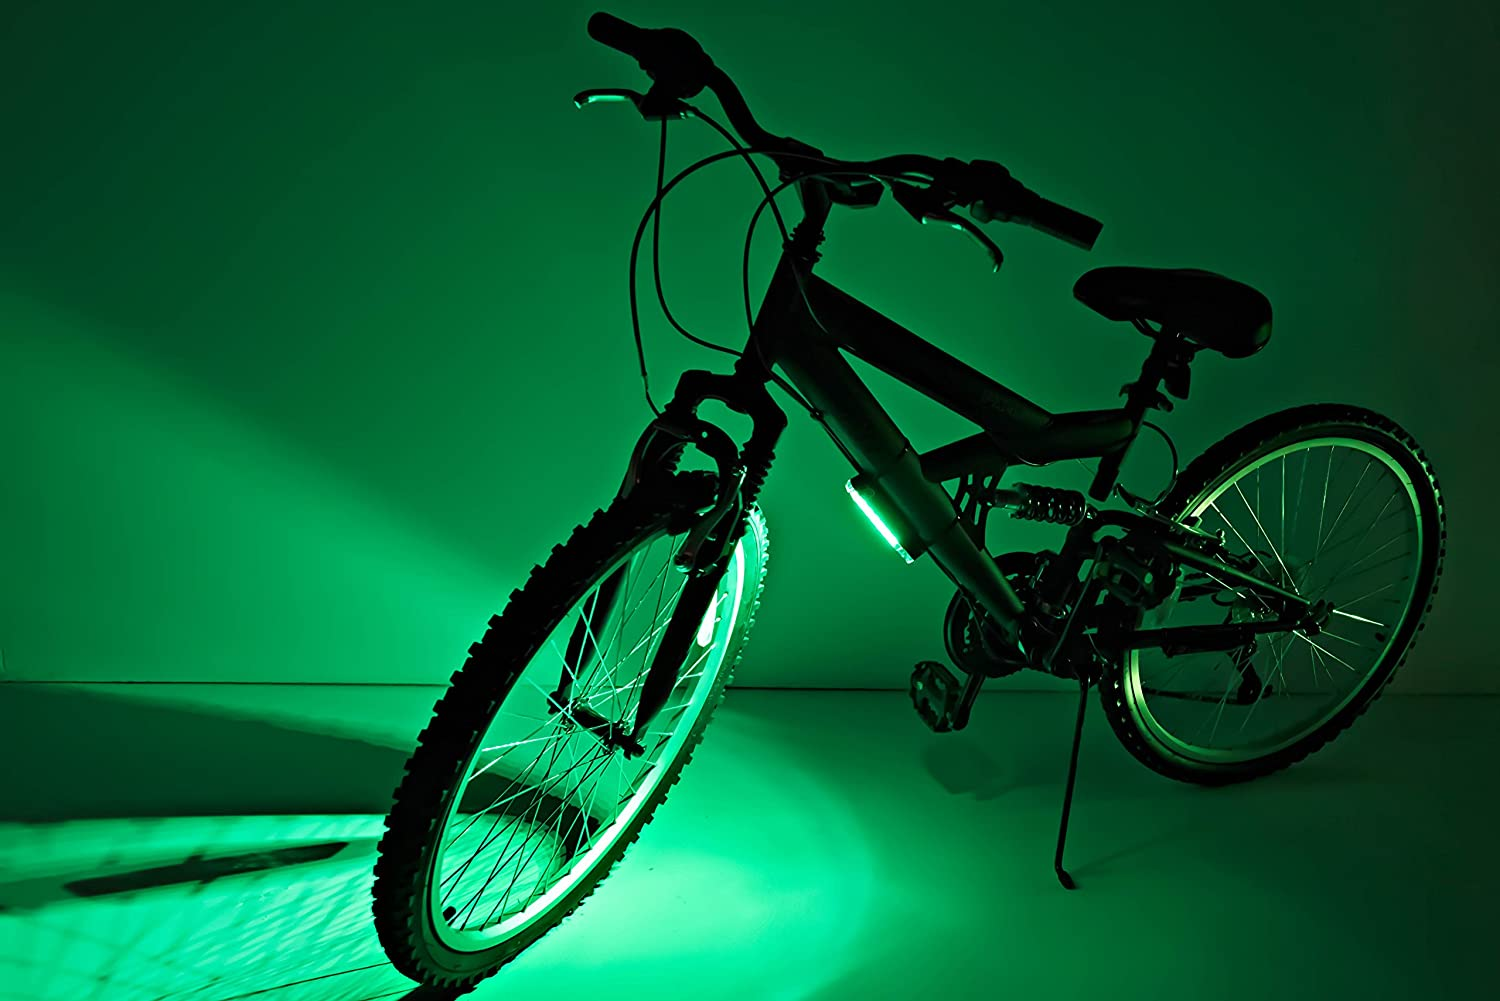 Brightz GoBrightz LED Bicycle Frame Accessory Light